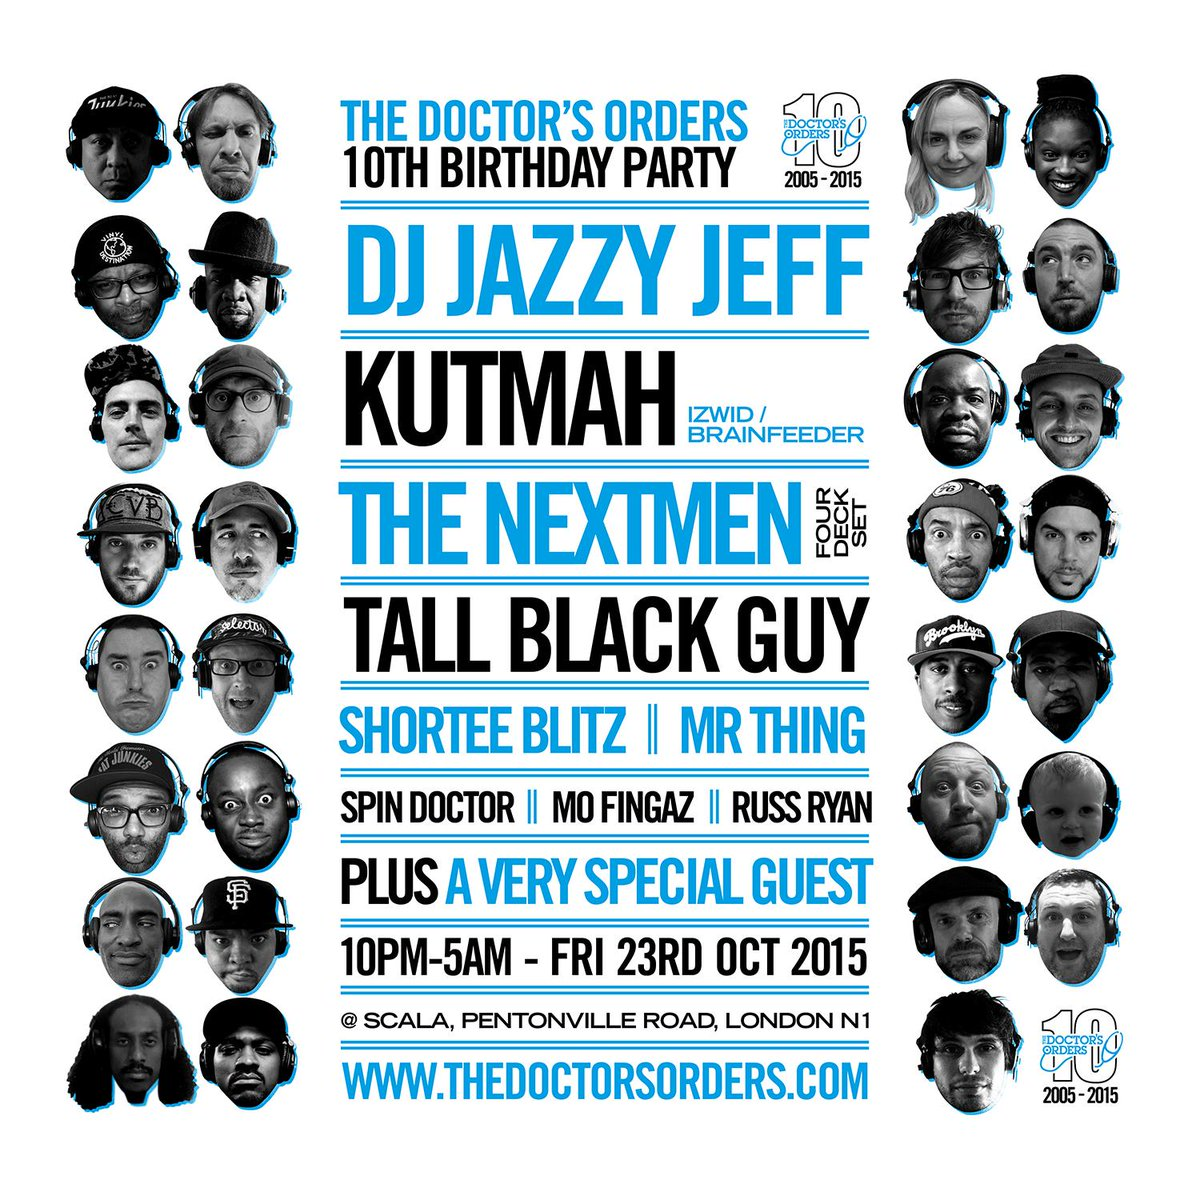 10th Birthday with our biggest lineup ever. First 10 tickets free!: http://t.co/nRY7T8DcMI   @djjazzyjeff215 @KUTMAH http://t.co/KvNxcTmCVH